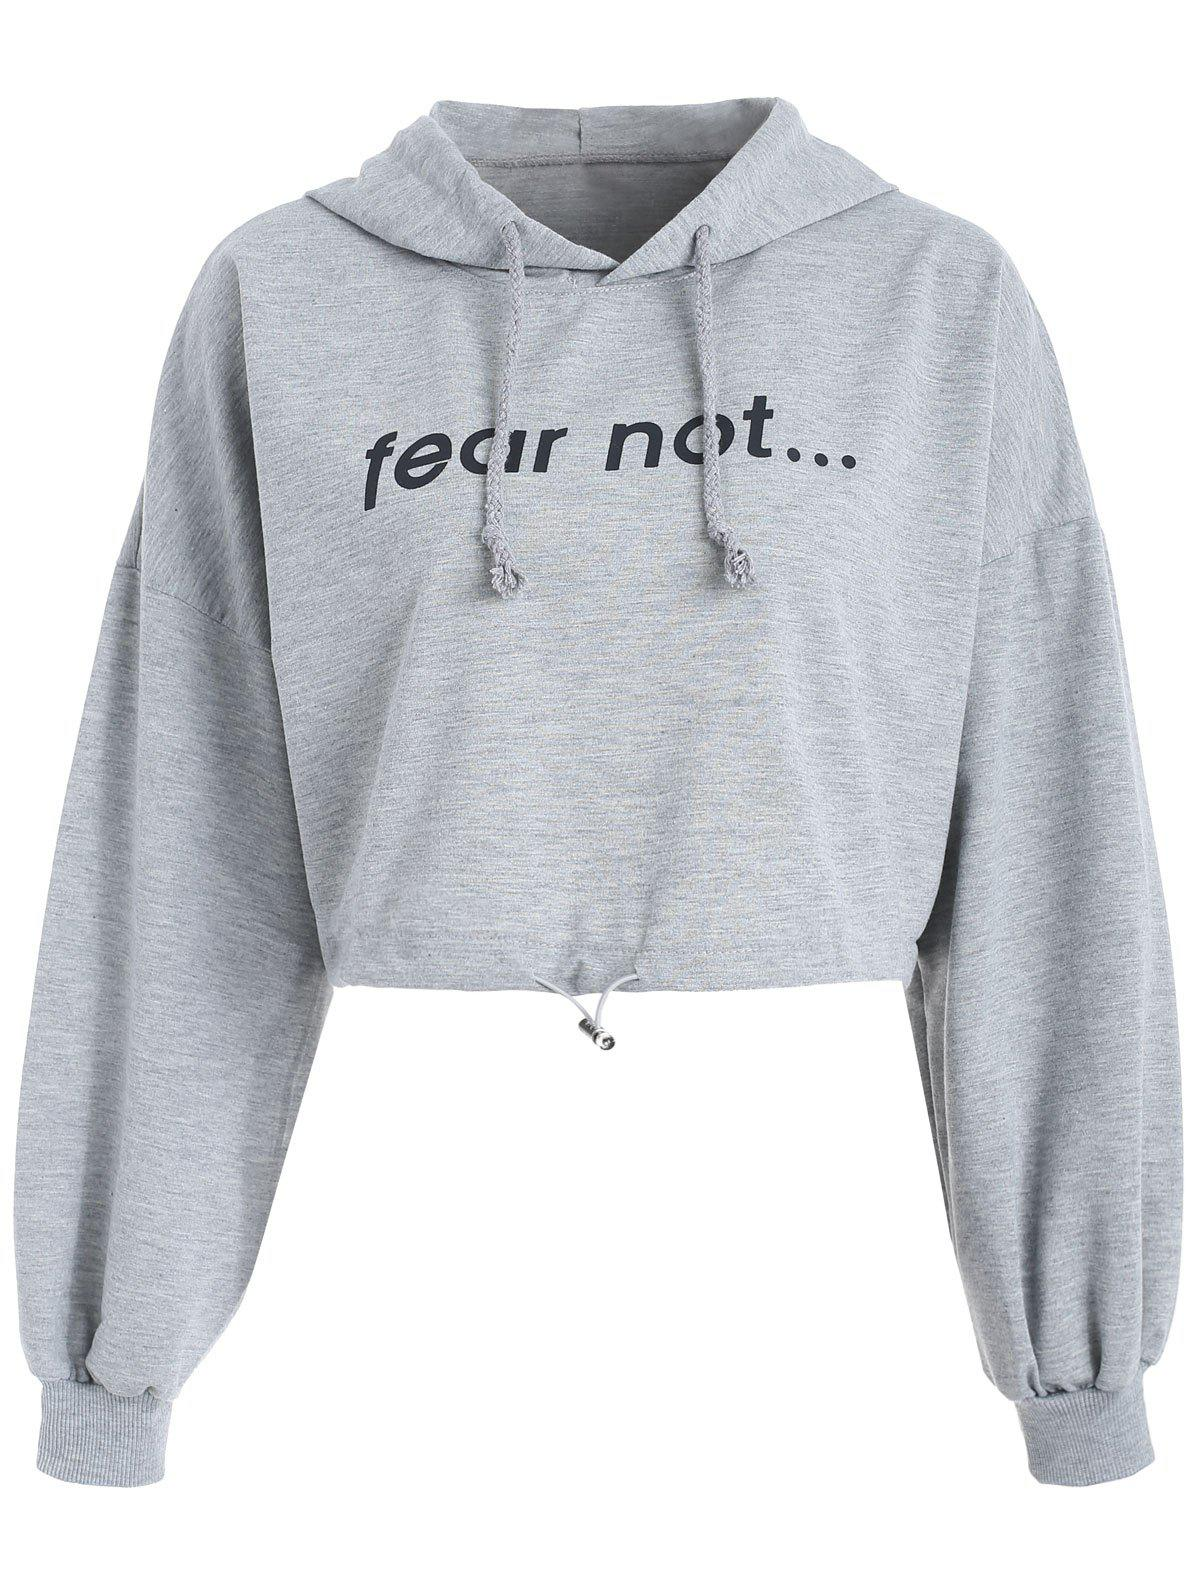 Chic Letter Print Waist Drawstring Hoodie